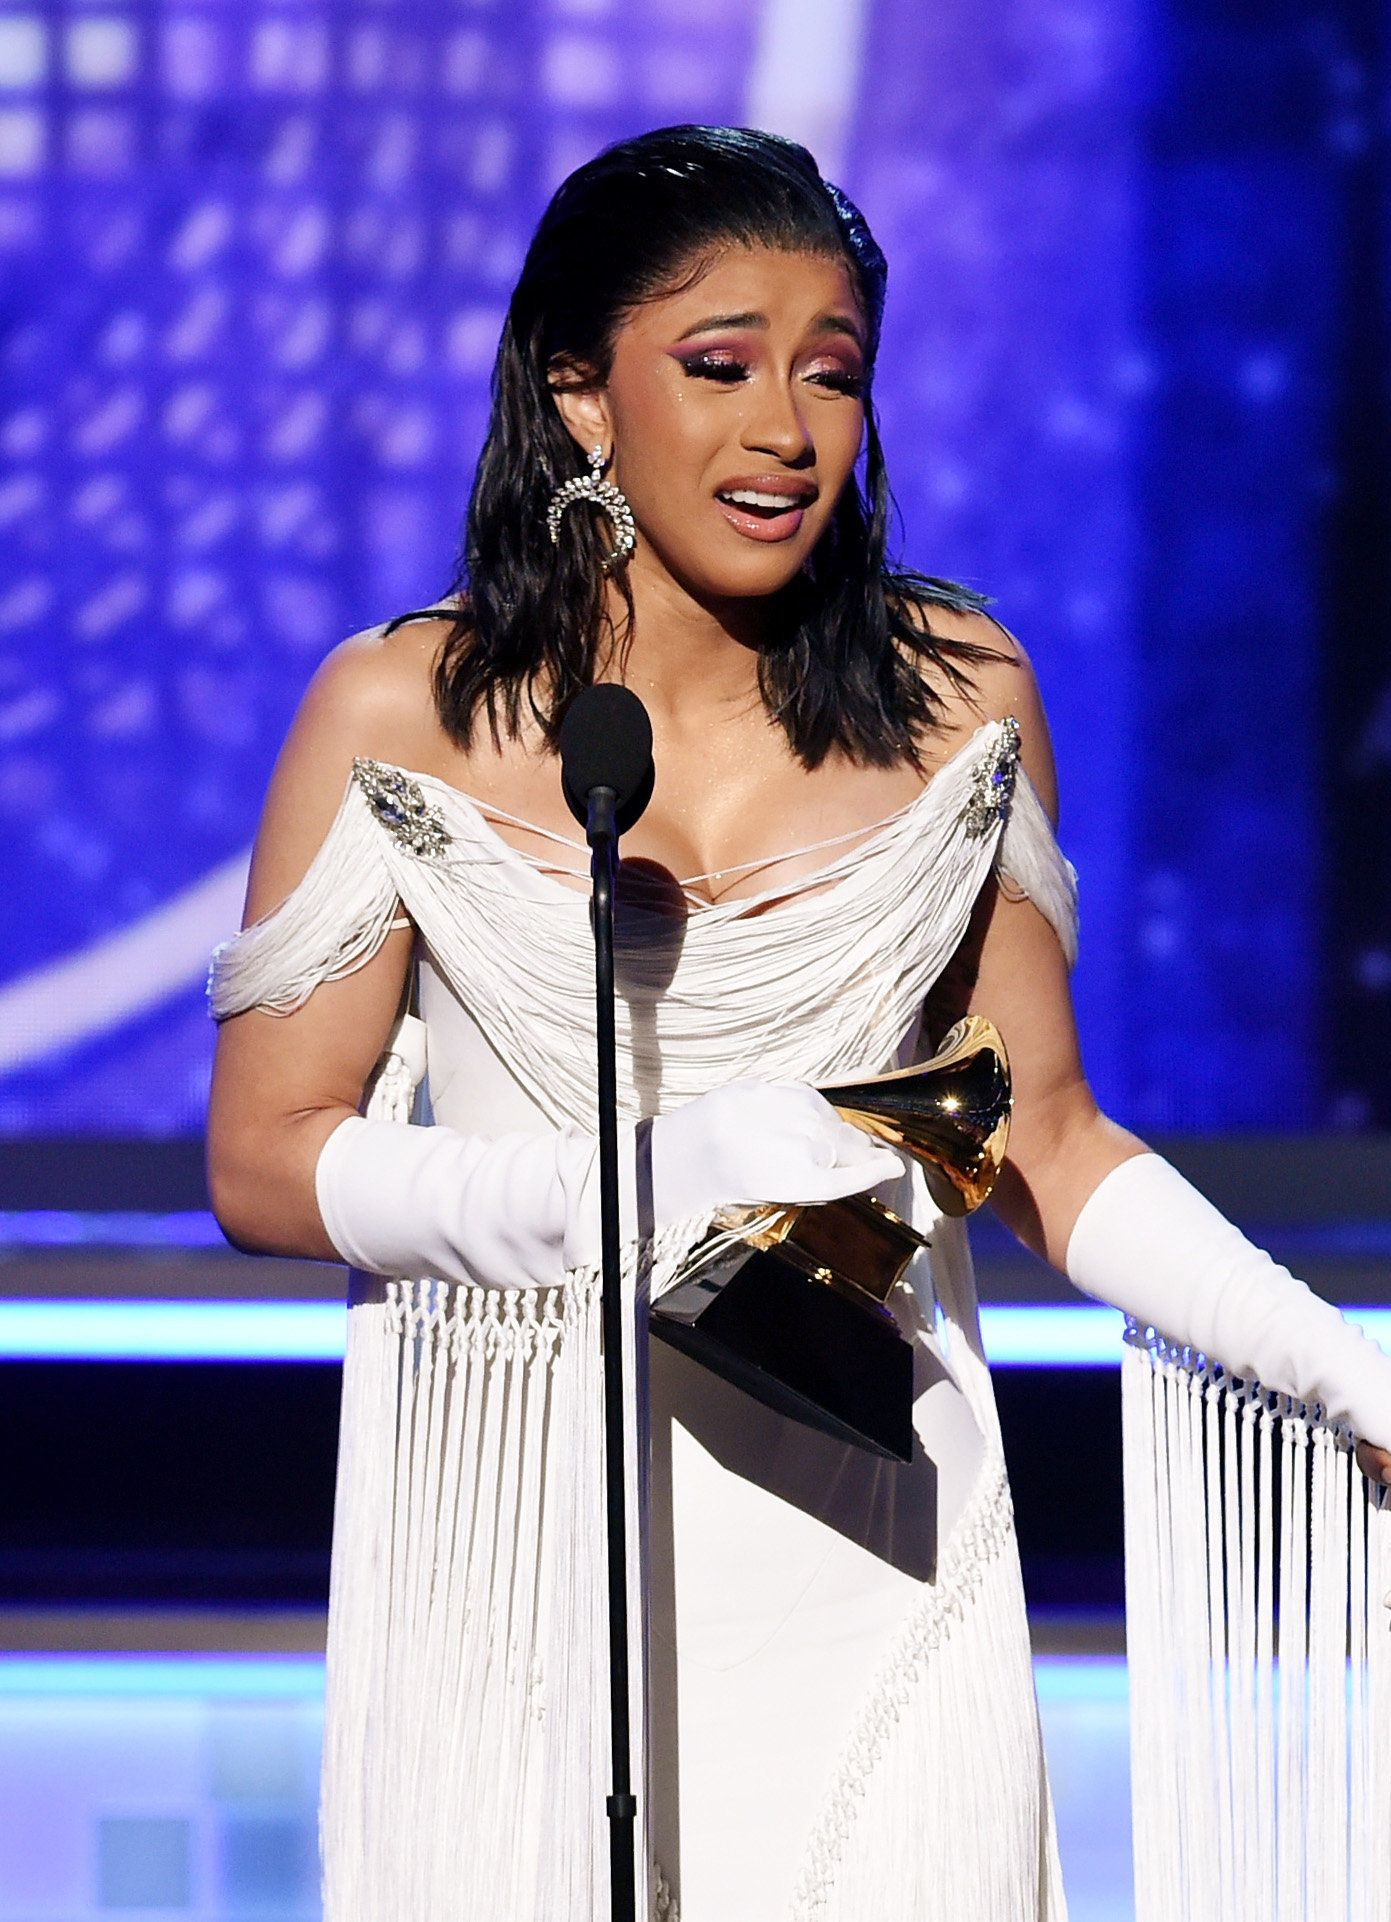 LOS ANGELES, CA - FEBRUARY 10:  Cardi B accepts the Best Rap Album for 'Invasion of Privacy' onstage during the 61st Annual GRAMMY Awards at Staples Center on February 10, 2019 in Los Angeles, California.  (Photo by Kevin Winter/Getty Images for The Recording Academy)